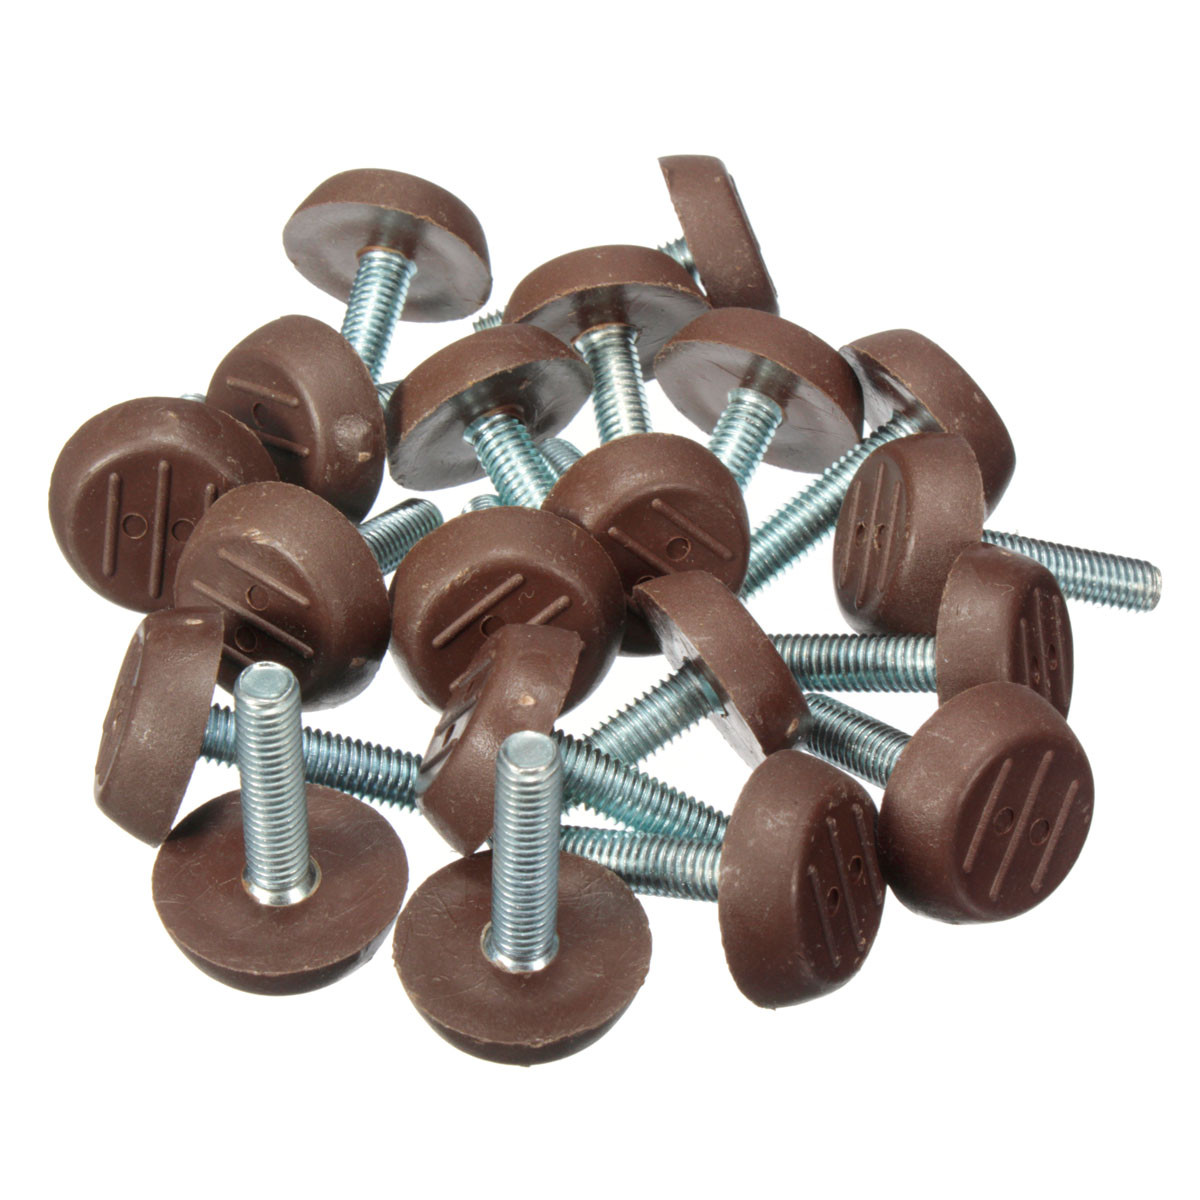 threaded chair glides target furniture folding chairs 20x m6 adjustable screw glide feet leveling foot